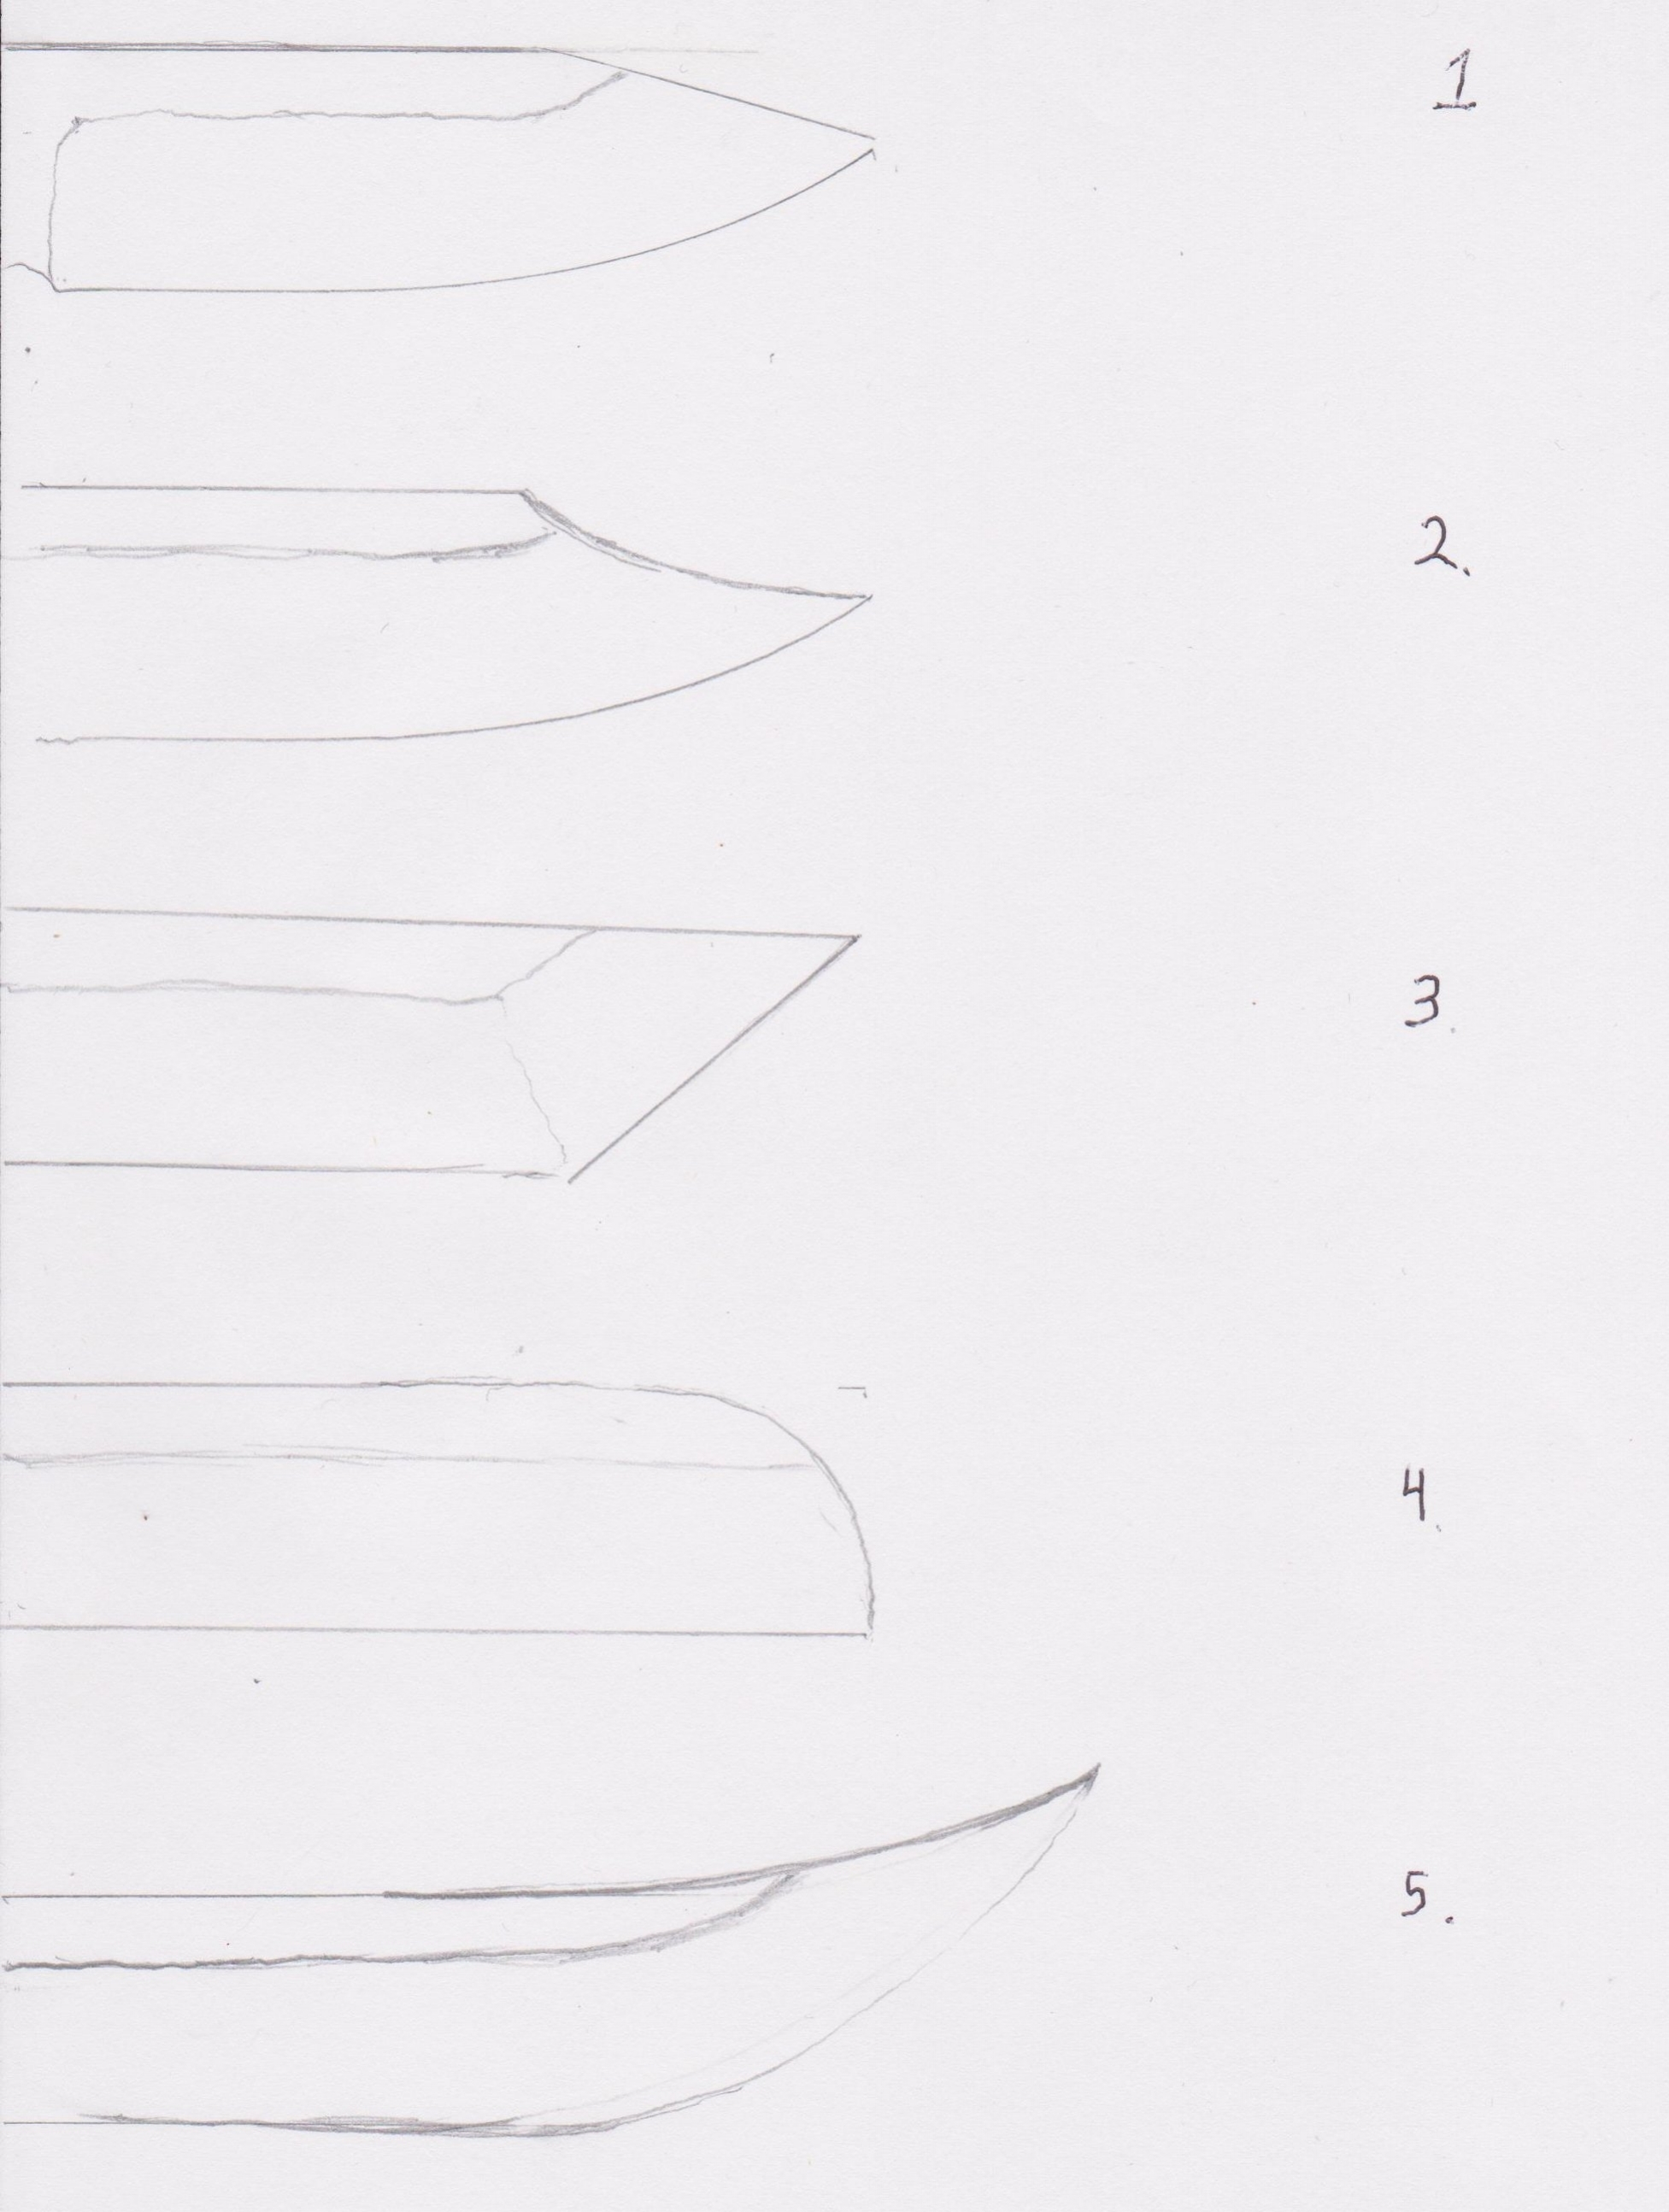 1. Drop point  2. Clip point  3. Tanto  4. Sheepfoot  5. Trailing point